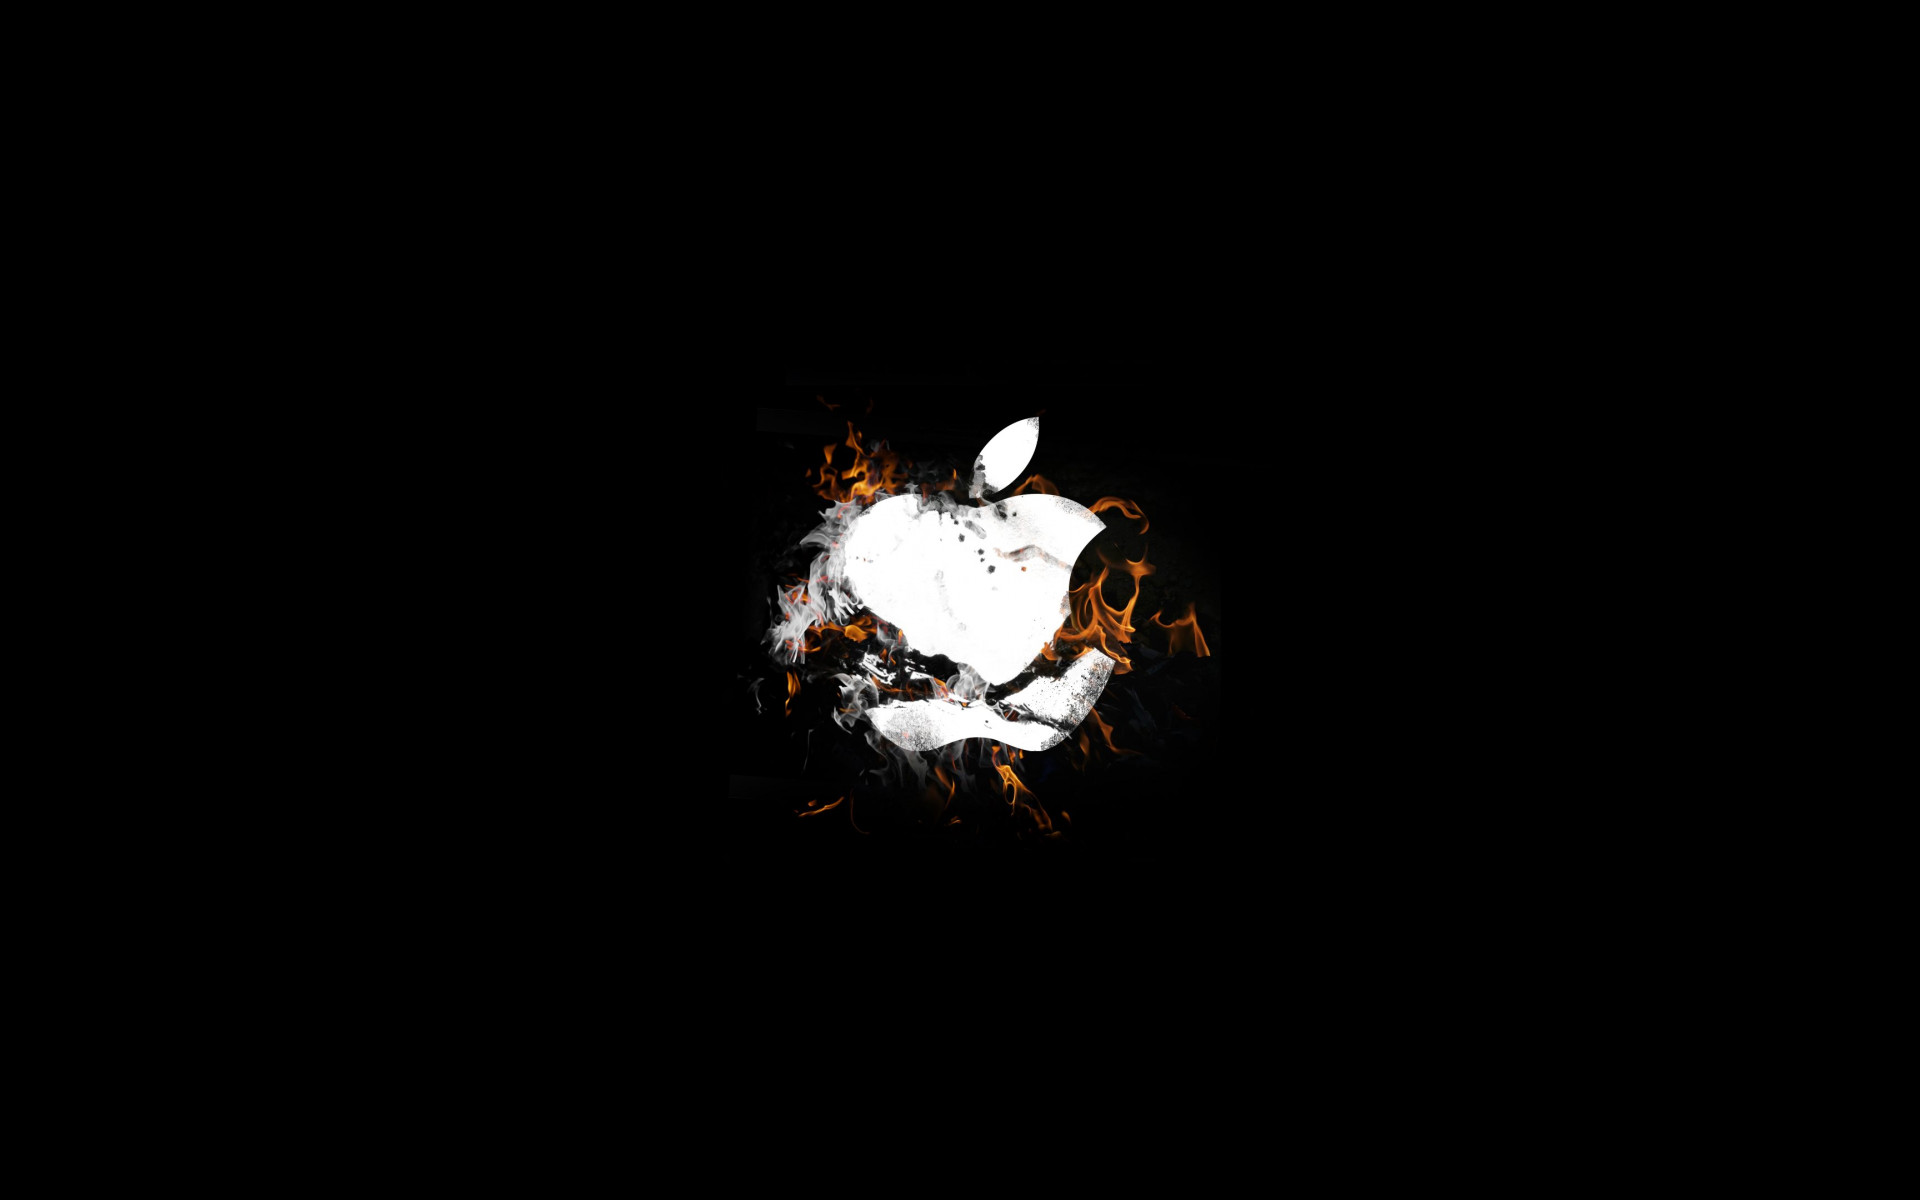 The Apple is on fire | 1920x1200 wallpaper